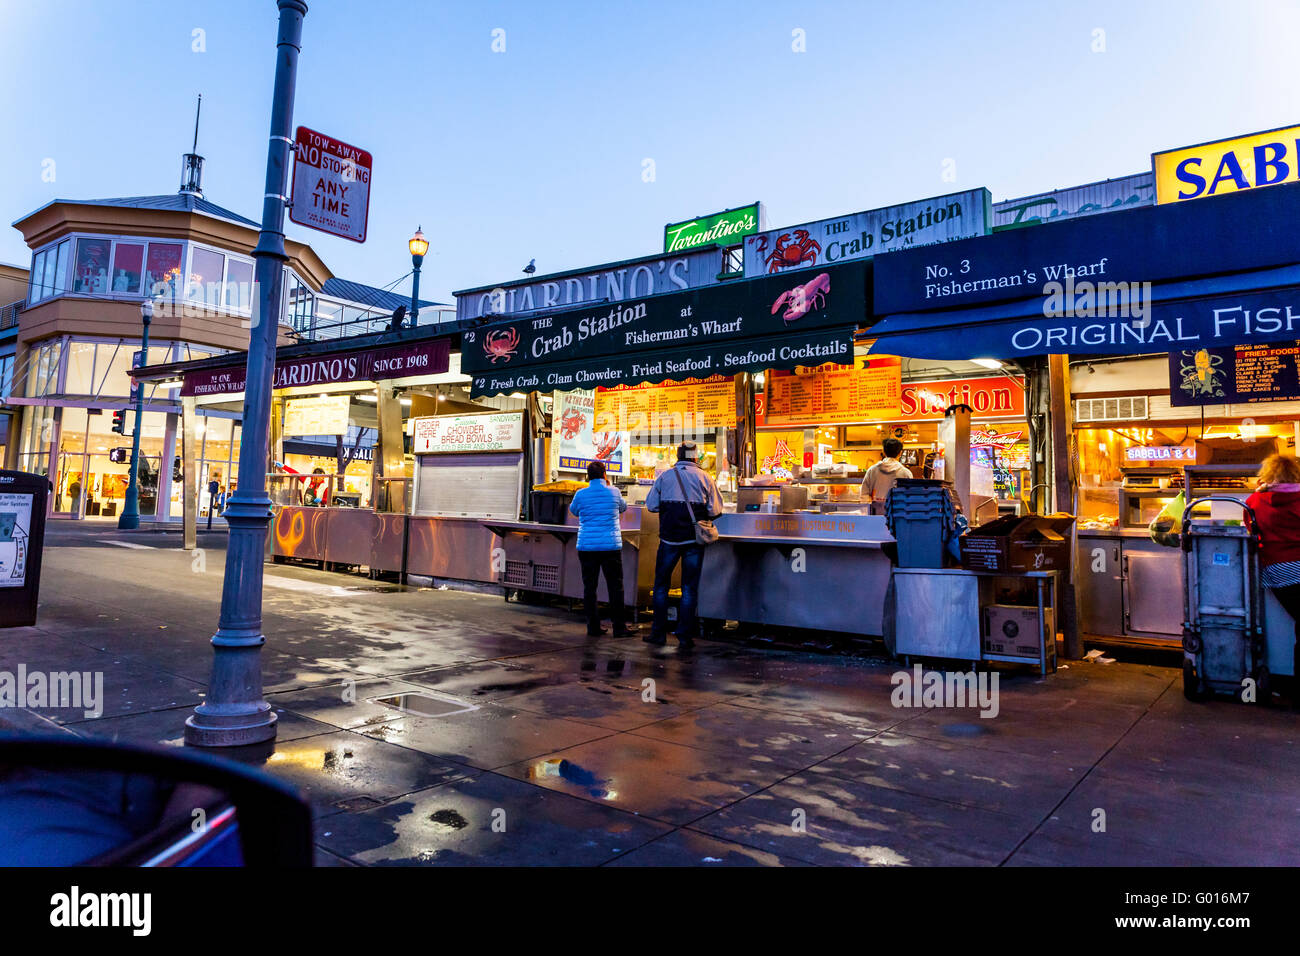 Guardino 39 s food stand at fisherman 39 s wharf in san for Fishing store san francisco